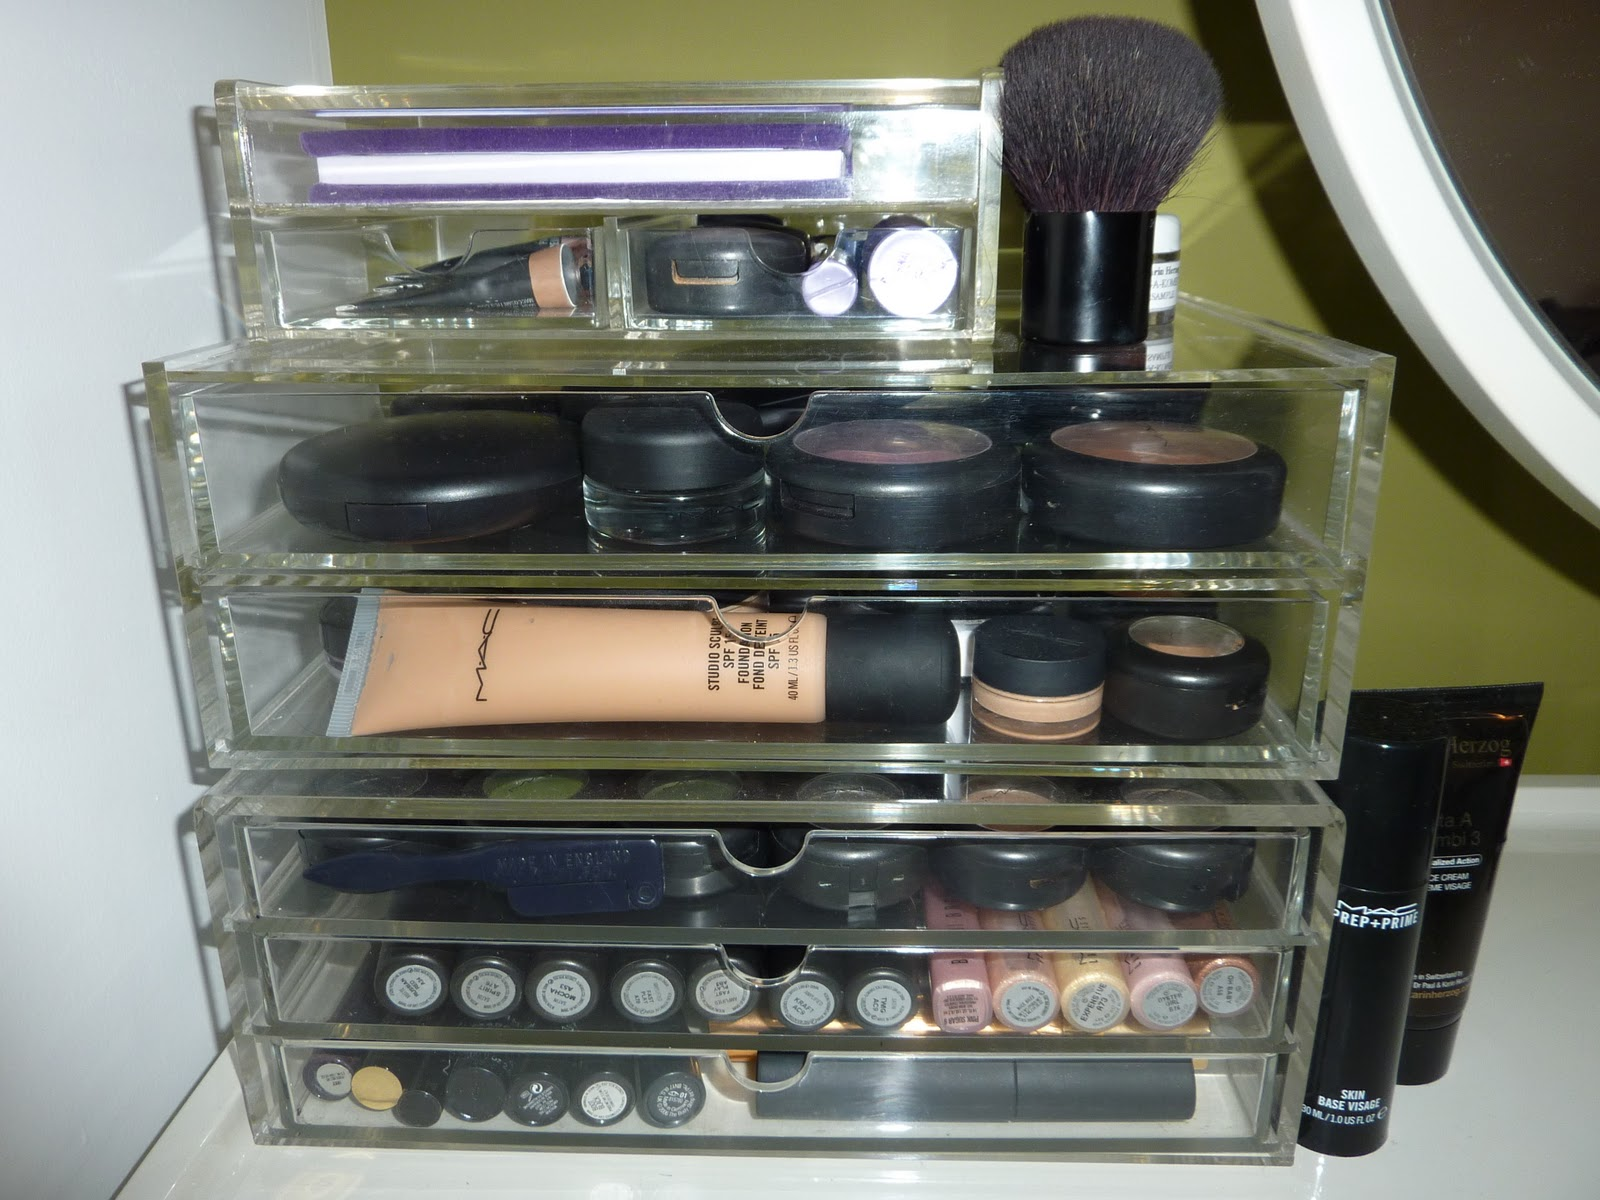 StyleFrost: Interior Style & Beauty: Make-up Collection & Storage